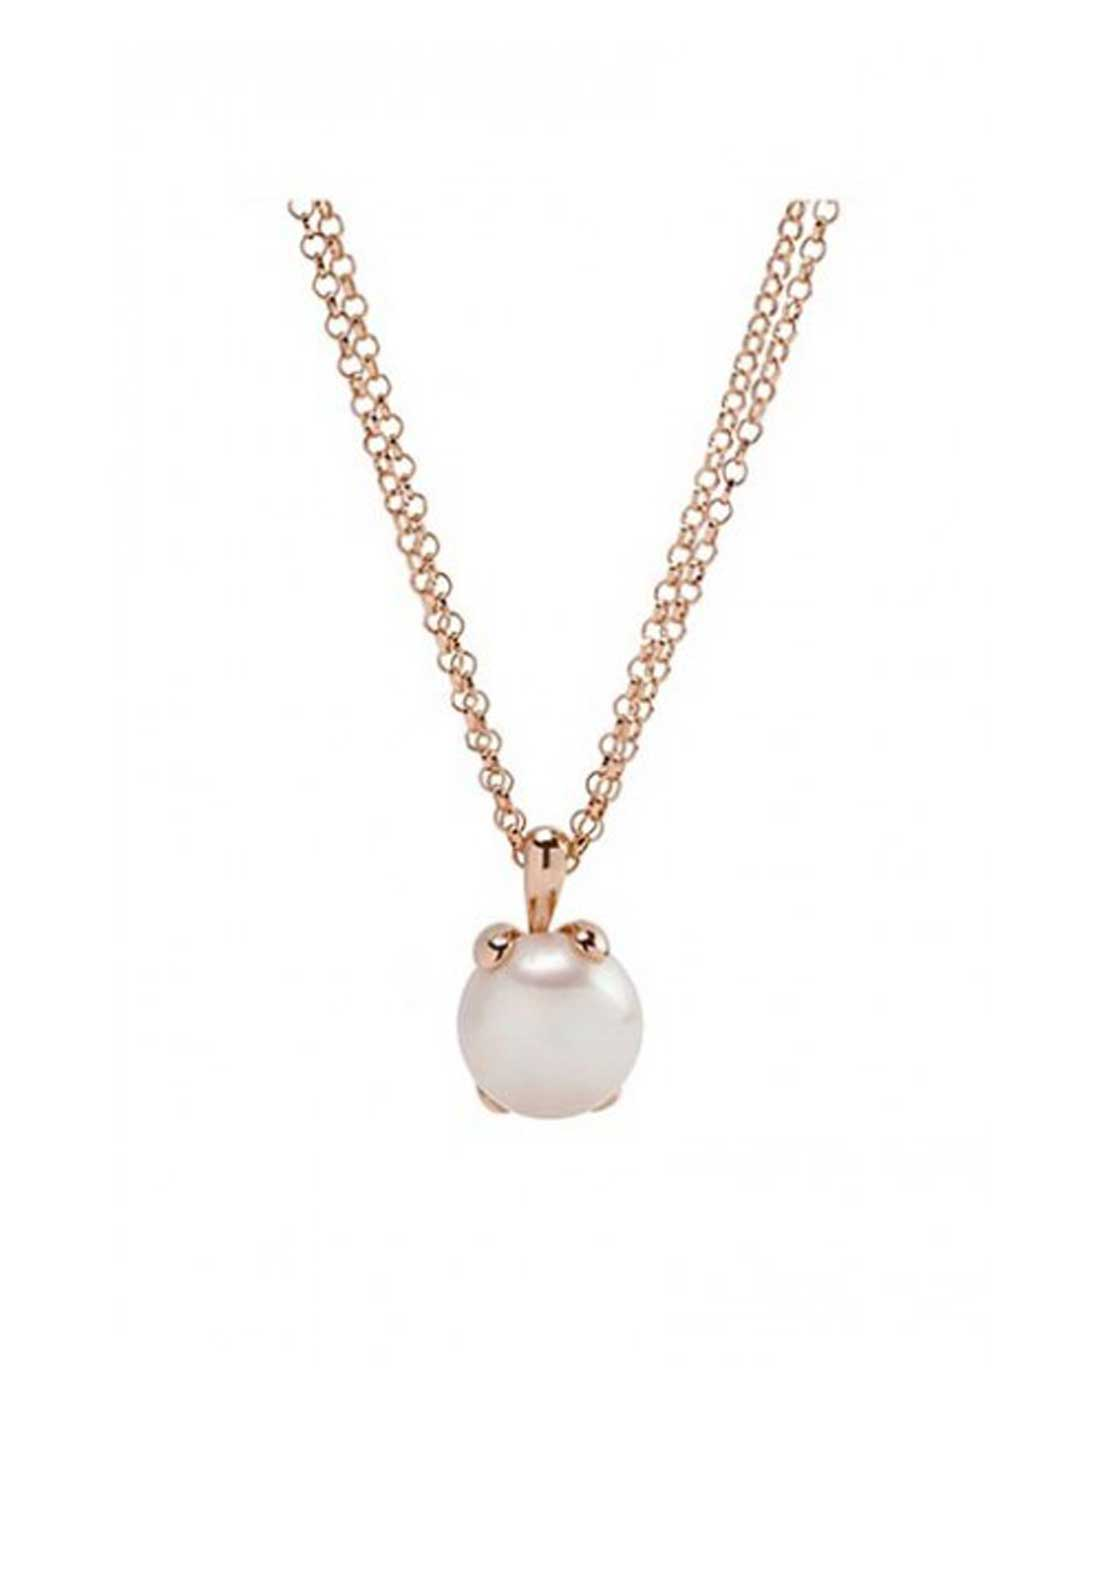 Bronzallure Pearl Pendant Necklace, Rose Gold